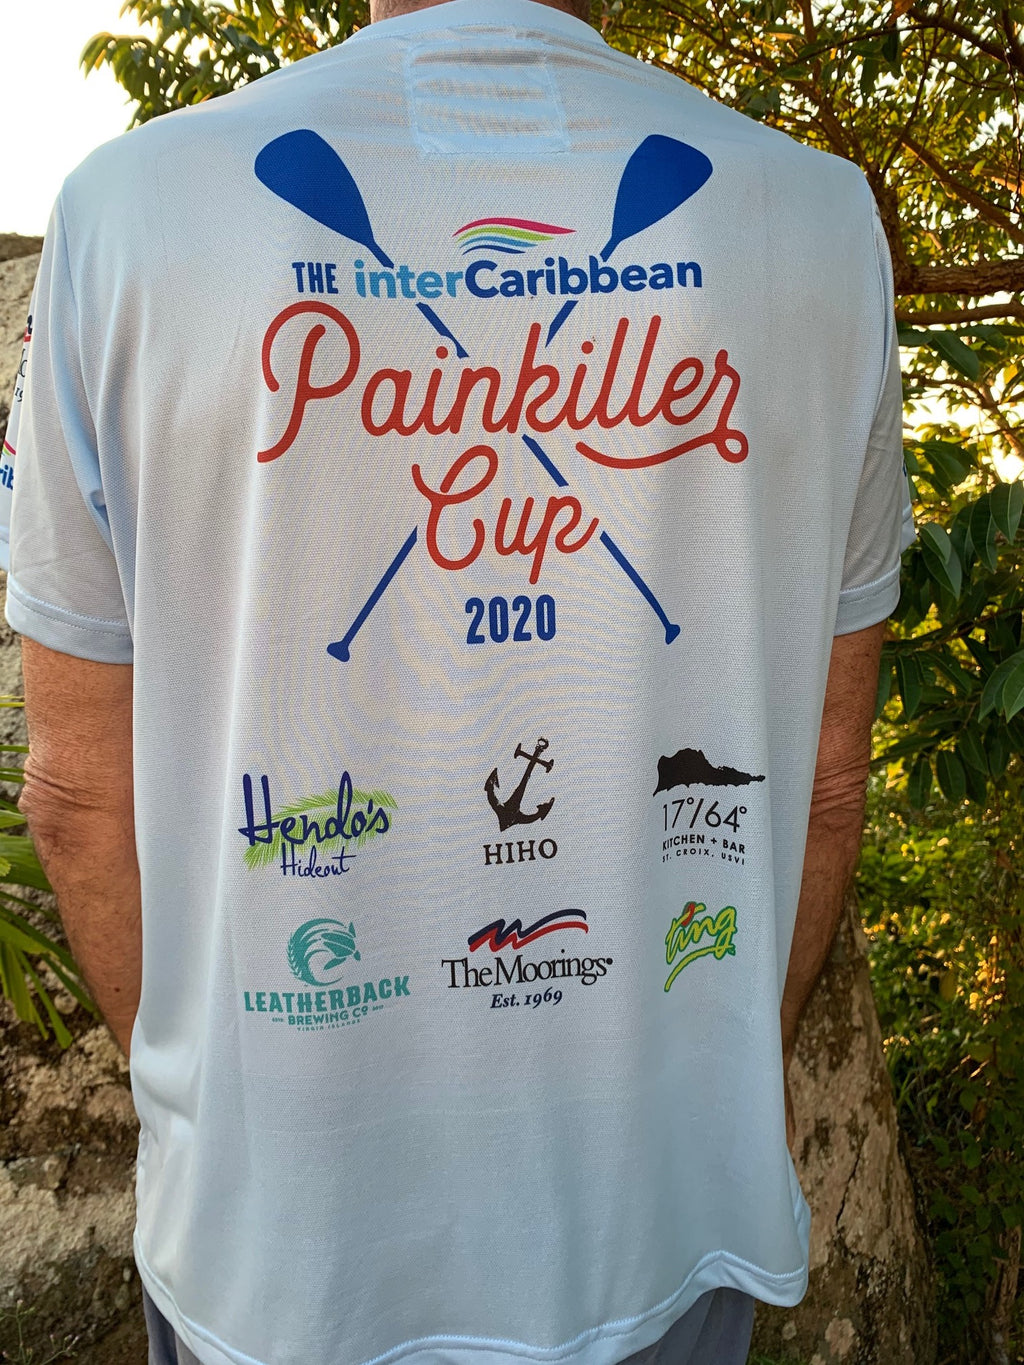 official painkiller cup sup racer jersey